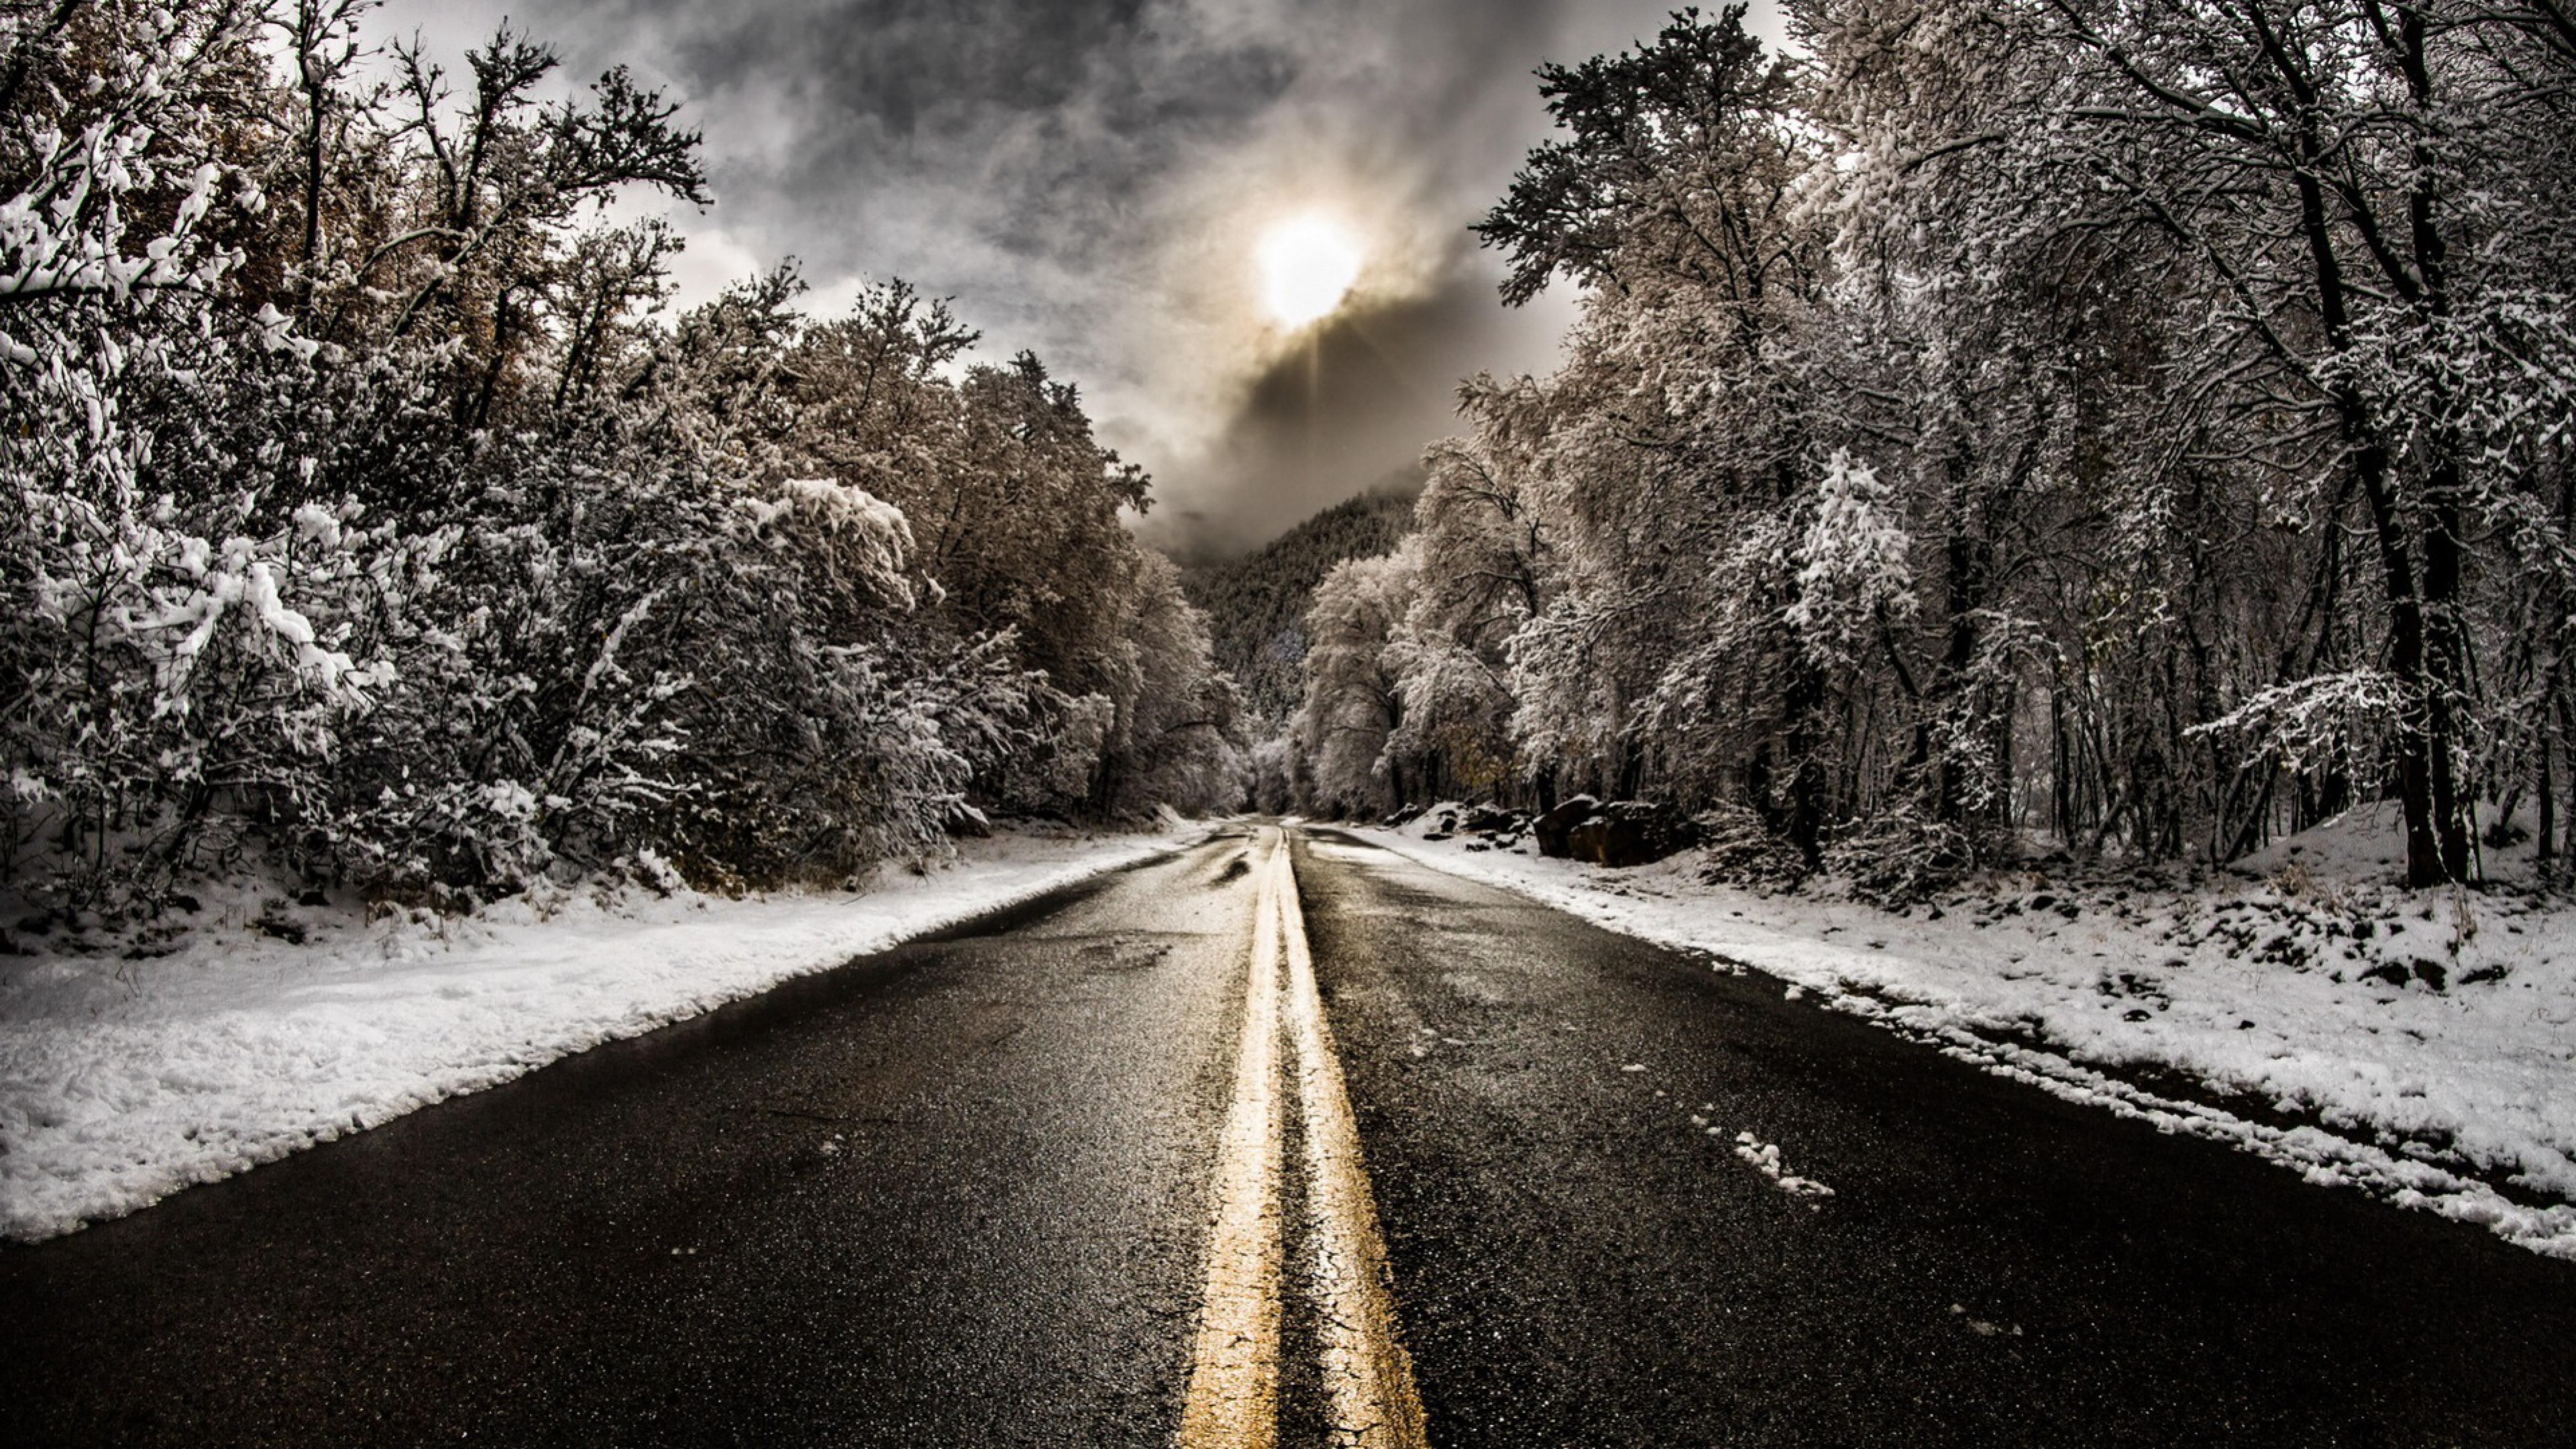 Road Winter Wallpapers High Quality Download Free